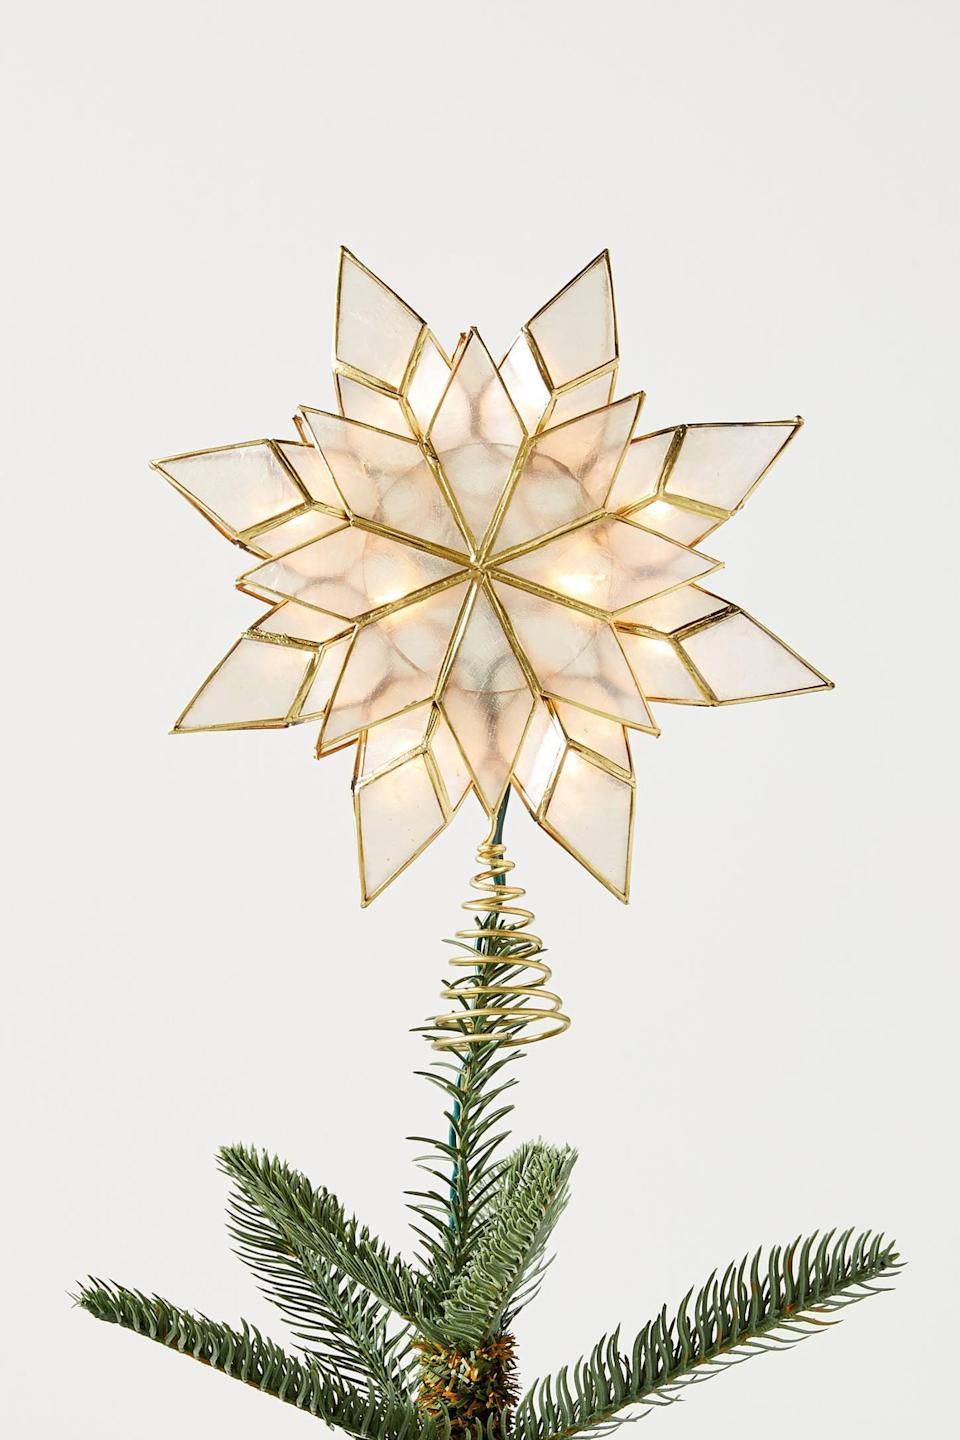 """<p>All of the inspiration is written in the stars with this <a href=""""https://www.popsugar.com/buy/Illuminated-Capiz-Star-Tree-Topper-490440?p_name=Illuminated%20Capiz%20Star%20Tree%20Topper&retailer=anthropologie.com&pid=490440&price=38&evar1=casa%3Aus&evar9=46615300&evar98=https%3A%2F%2Fwww.popsugar.com%2Fhome%2Fphoto-gallery%2F46615300%2Fimage%2F46615310%2FIlluminated-Capiz-Star-Tree-Topper&list1=shopping%2Canthropologie%2Choliday%2Cchristmas%2Cchristmas%20decorations%2Choliday%20decor%2Chome%20shopping&prop13=mobile&pdata=1"""" rel=""""nofollow noopener"""" class=""""link rapid-noclick-resp"""" target=""""_blank"""" data-ylk=""""slk:Illuminated Capiz Star Tree Topper"""">Illuminated Capiz Star Tree Topper</a> ($38).</p>"""